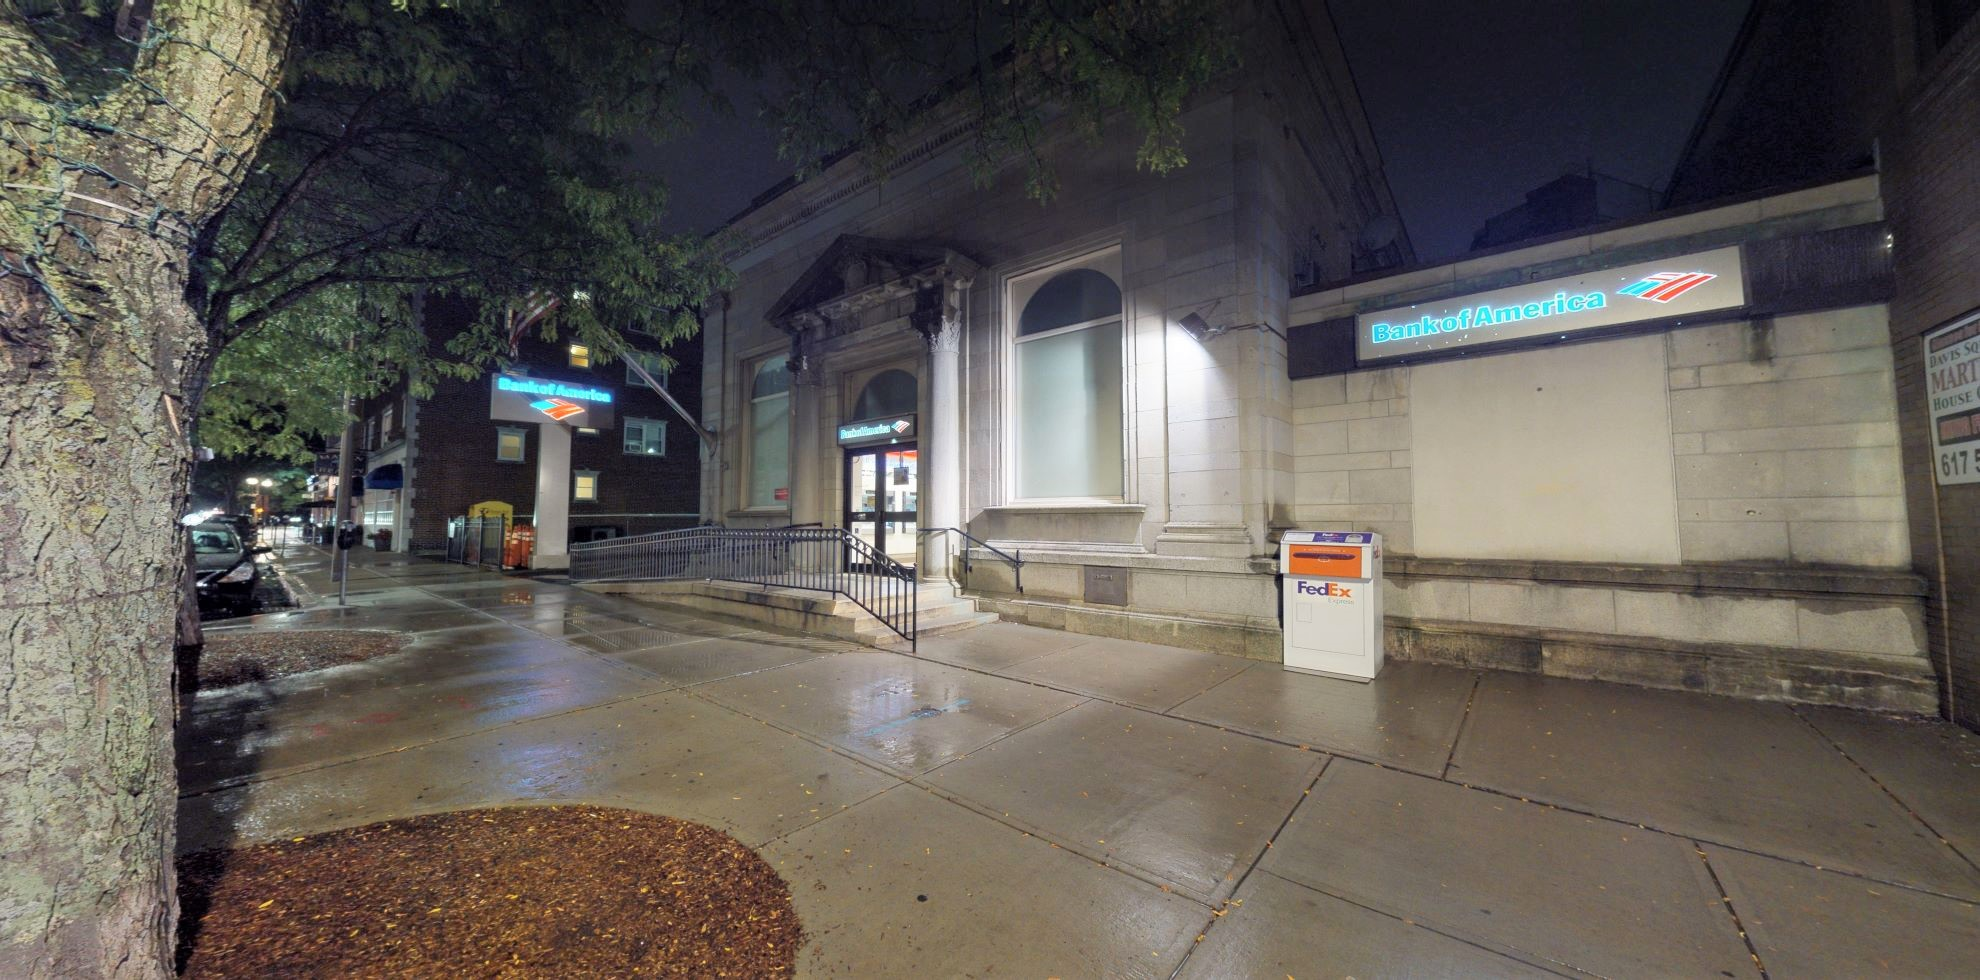 Bank of America financial center with walk-up ATM   406 Highland Ave, Somerville, MA 02144